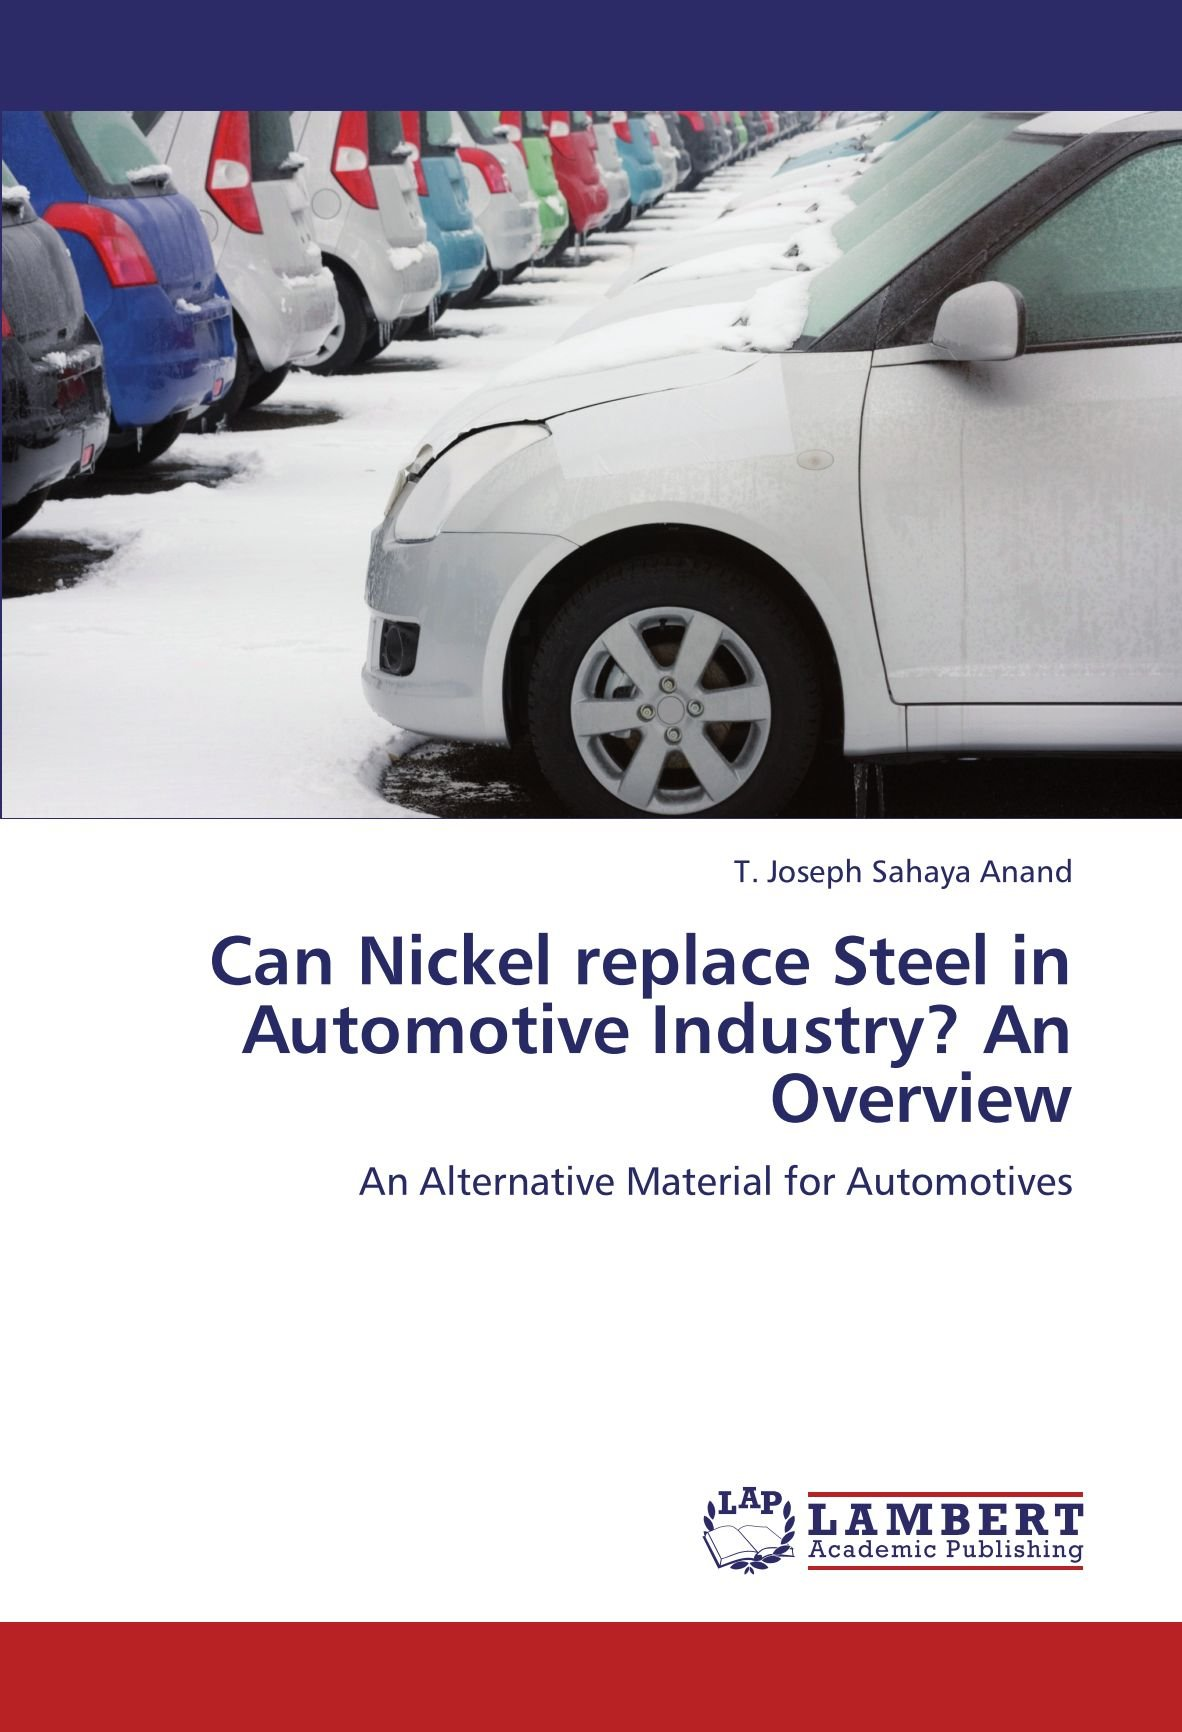 Can Nickel replace Steel in Automotive Industry? An Overview: An Alternative Material for Automotives